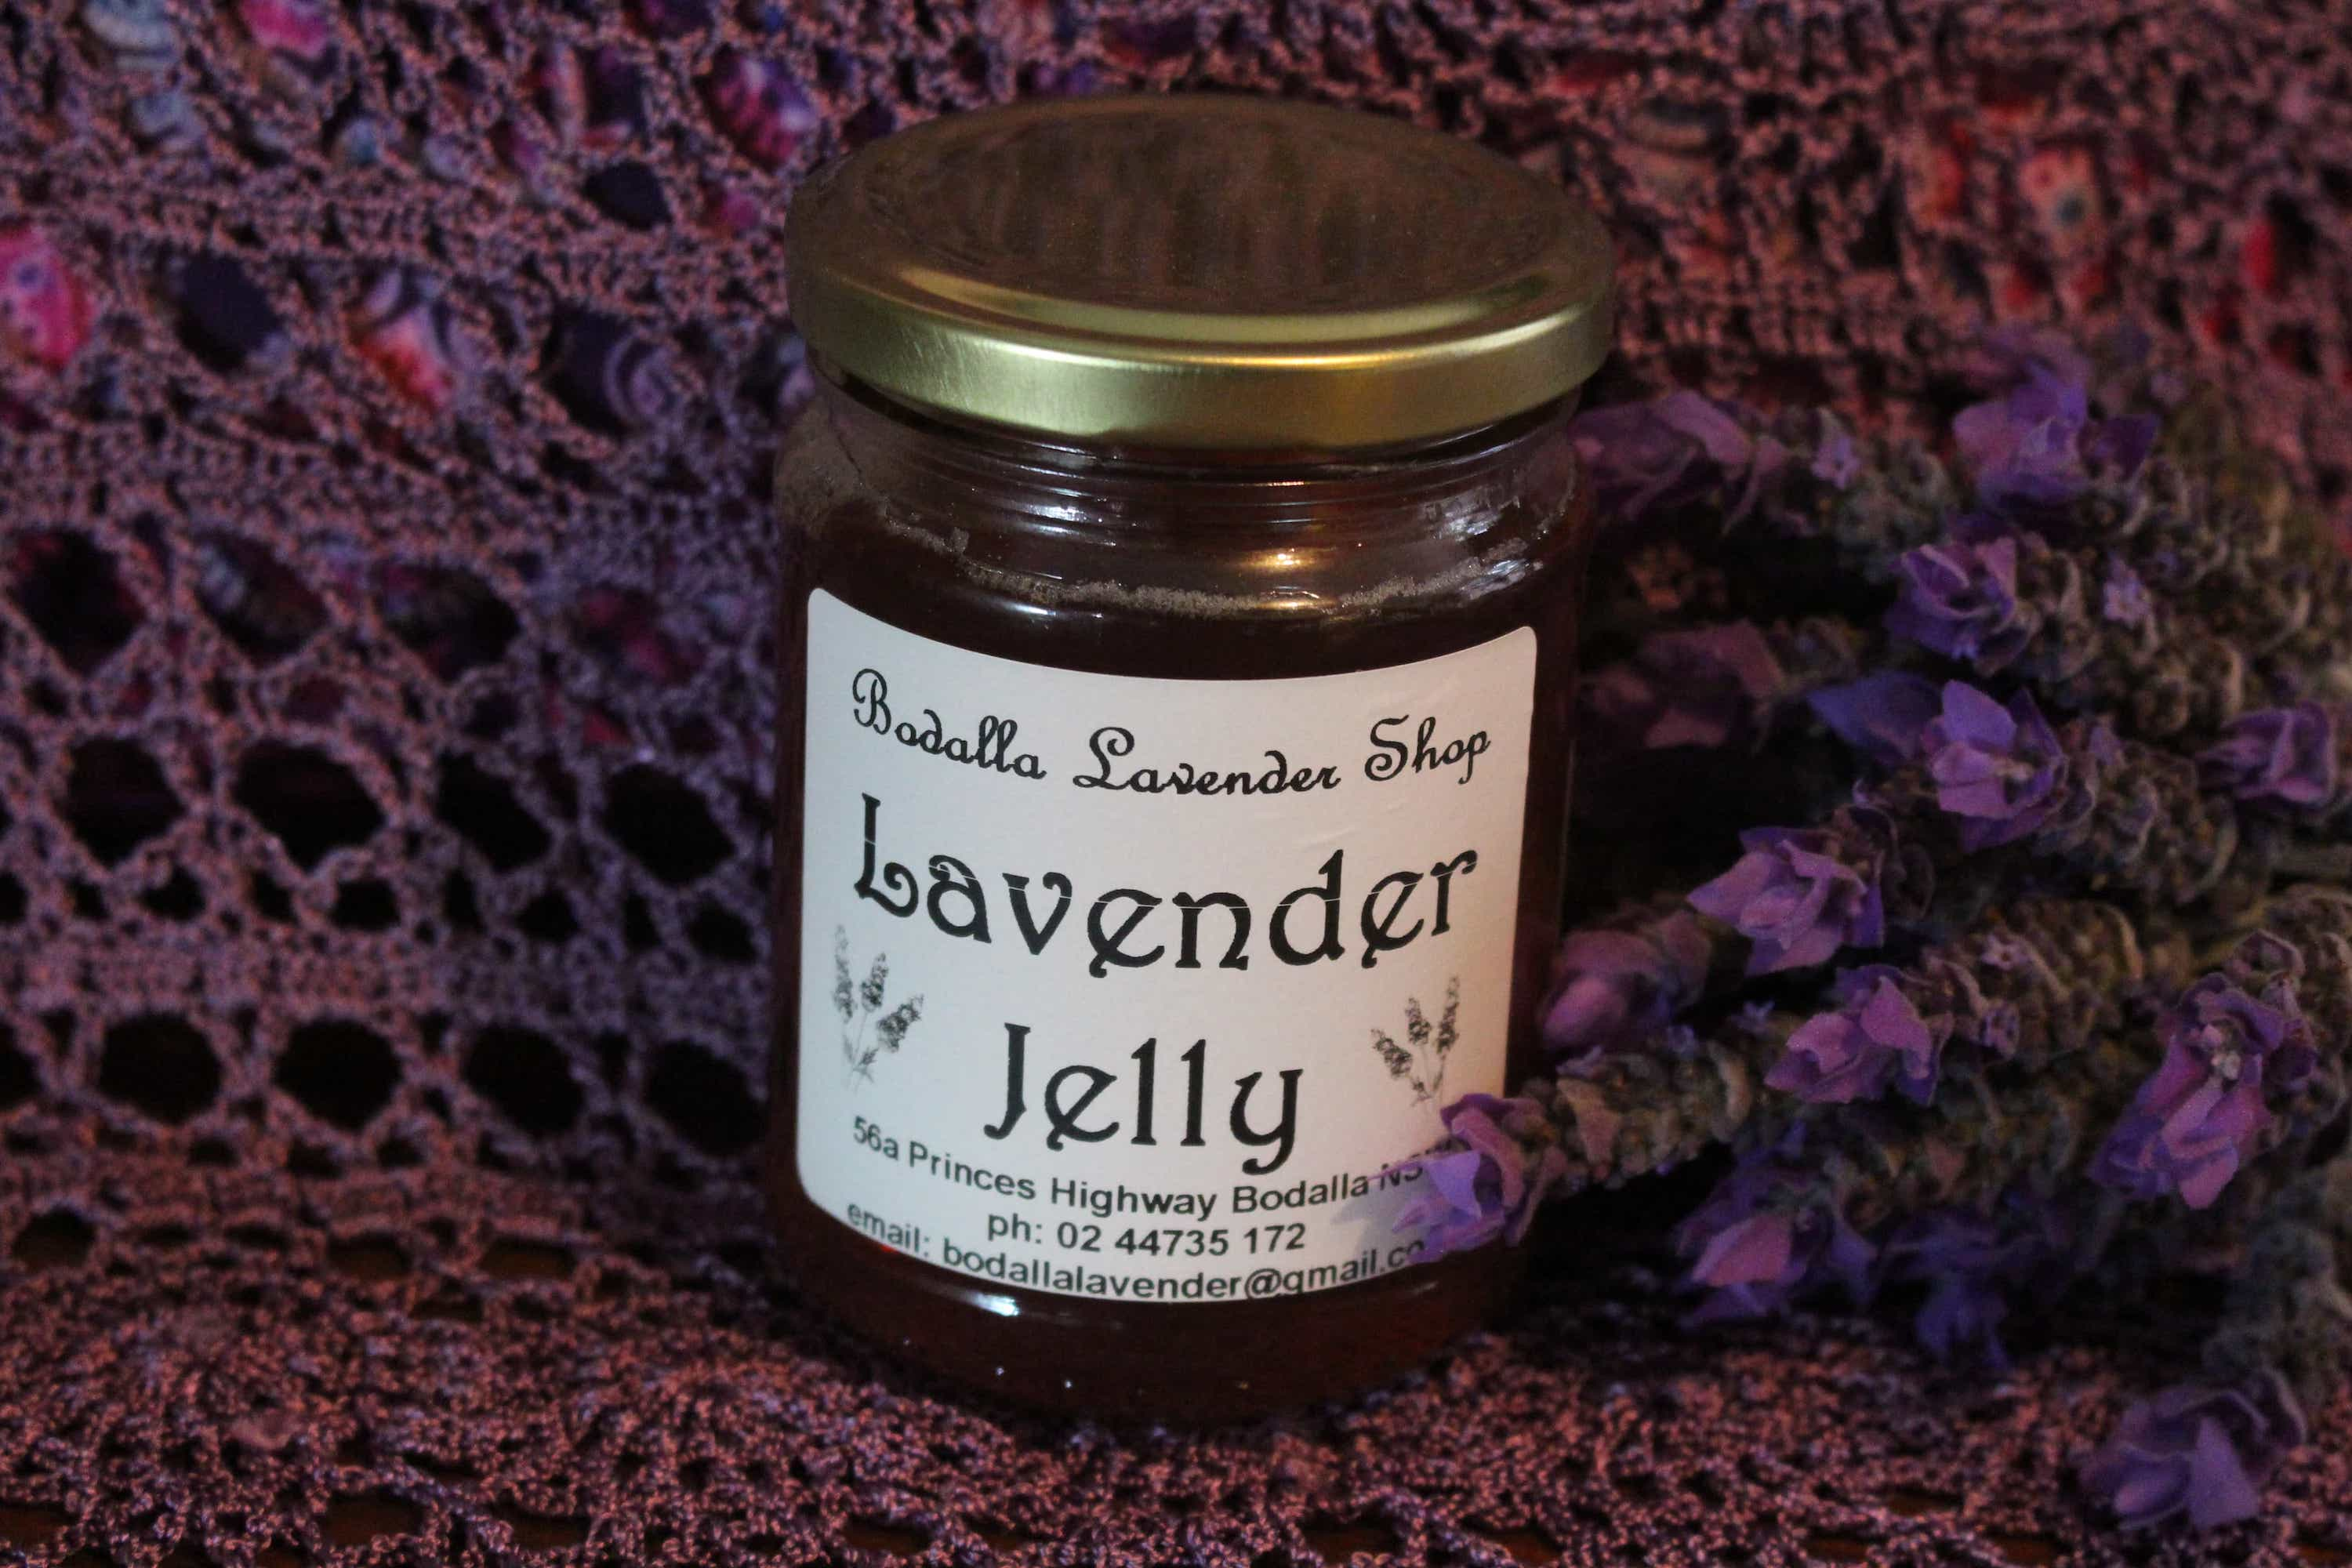 Photograph of an Lavender Jelly product